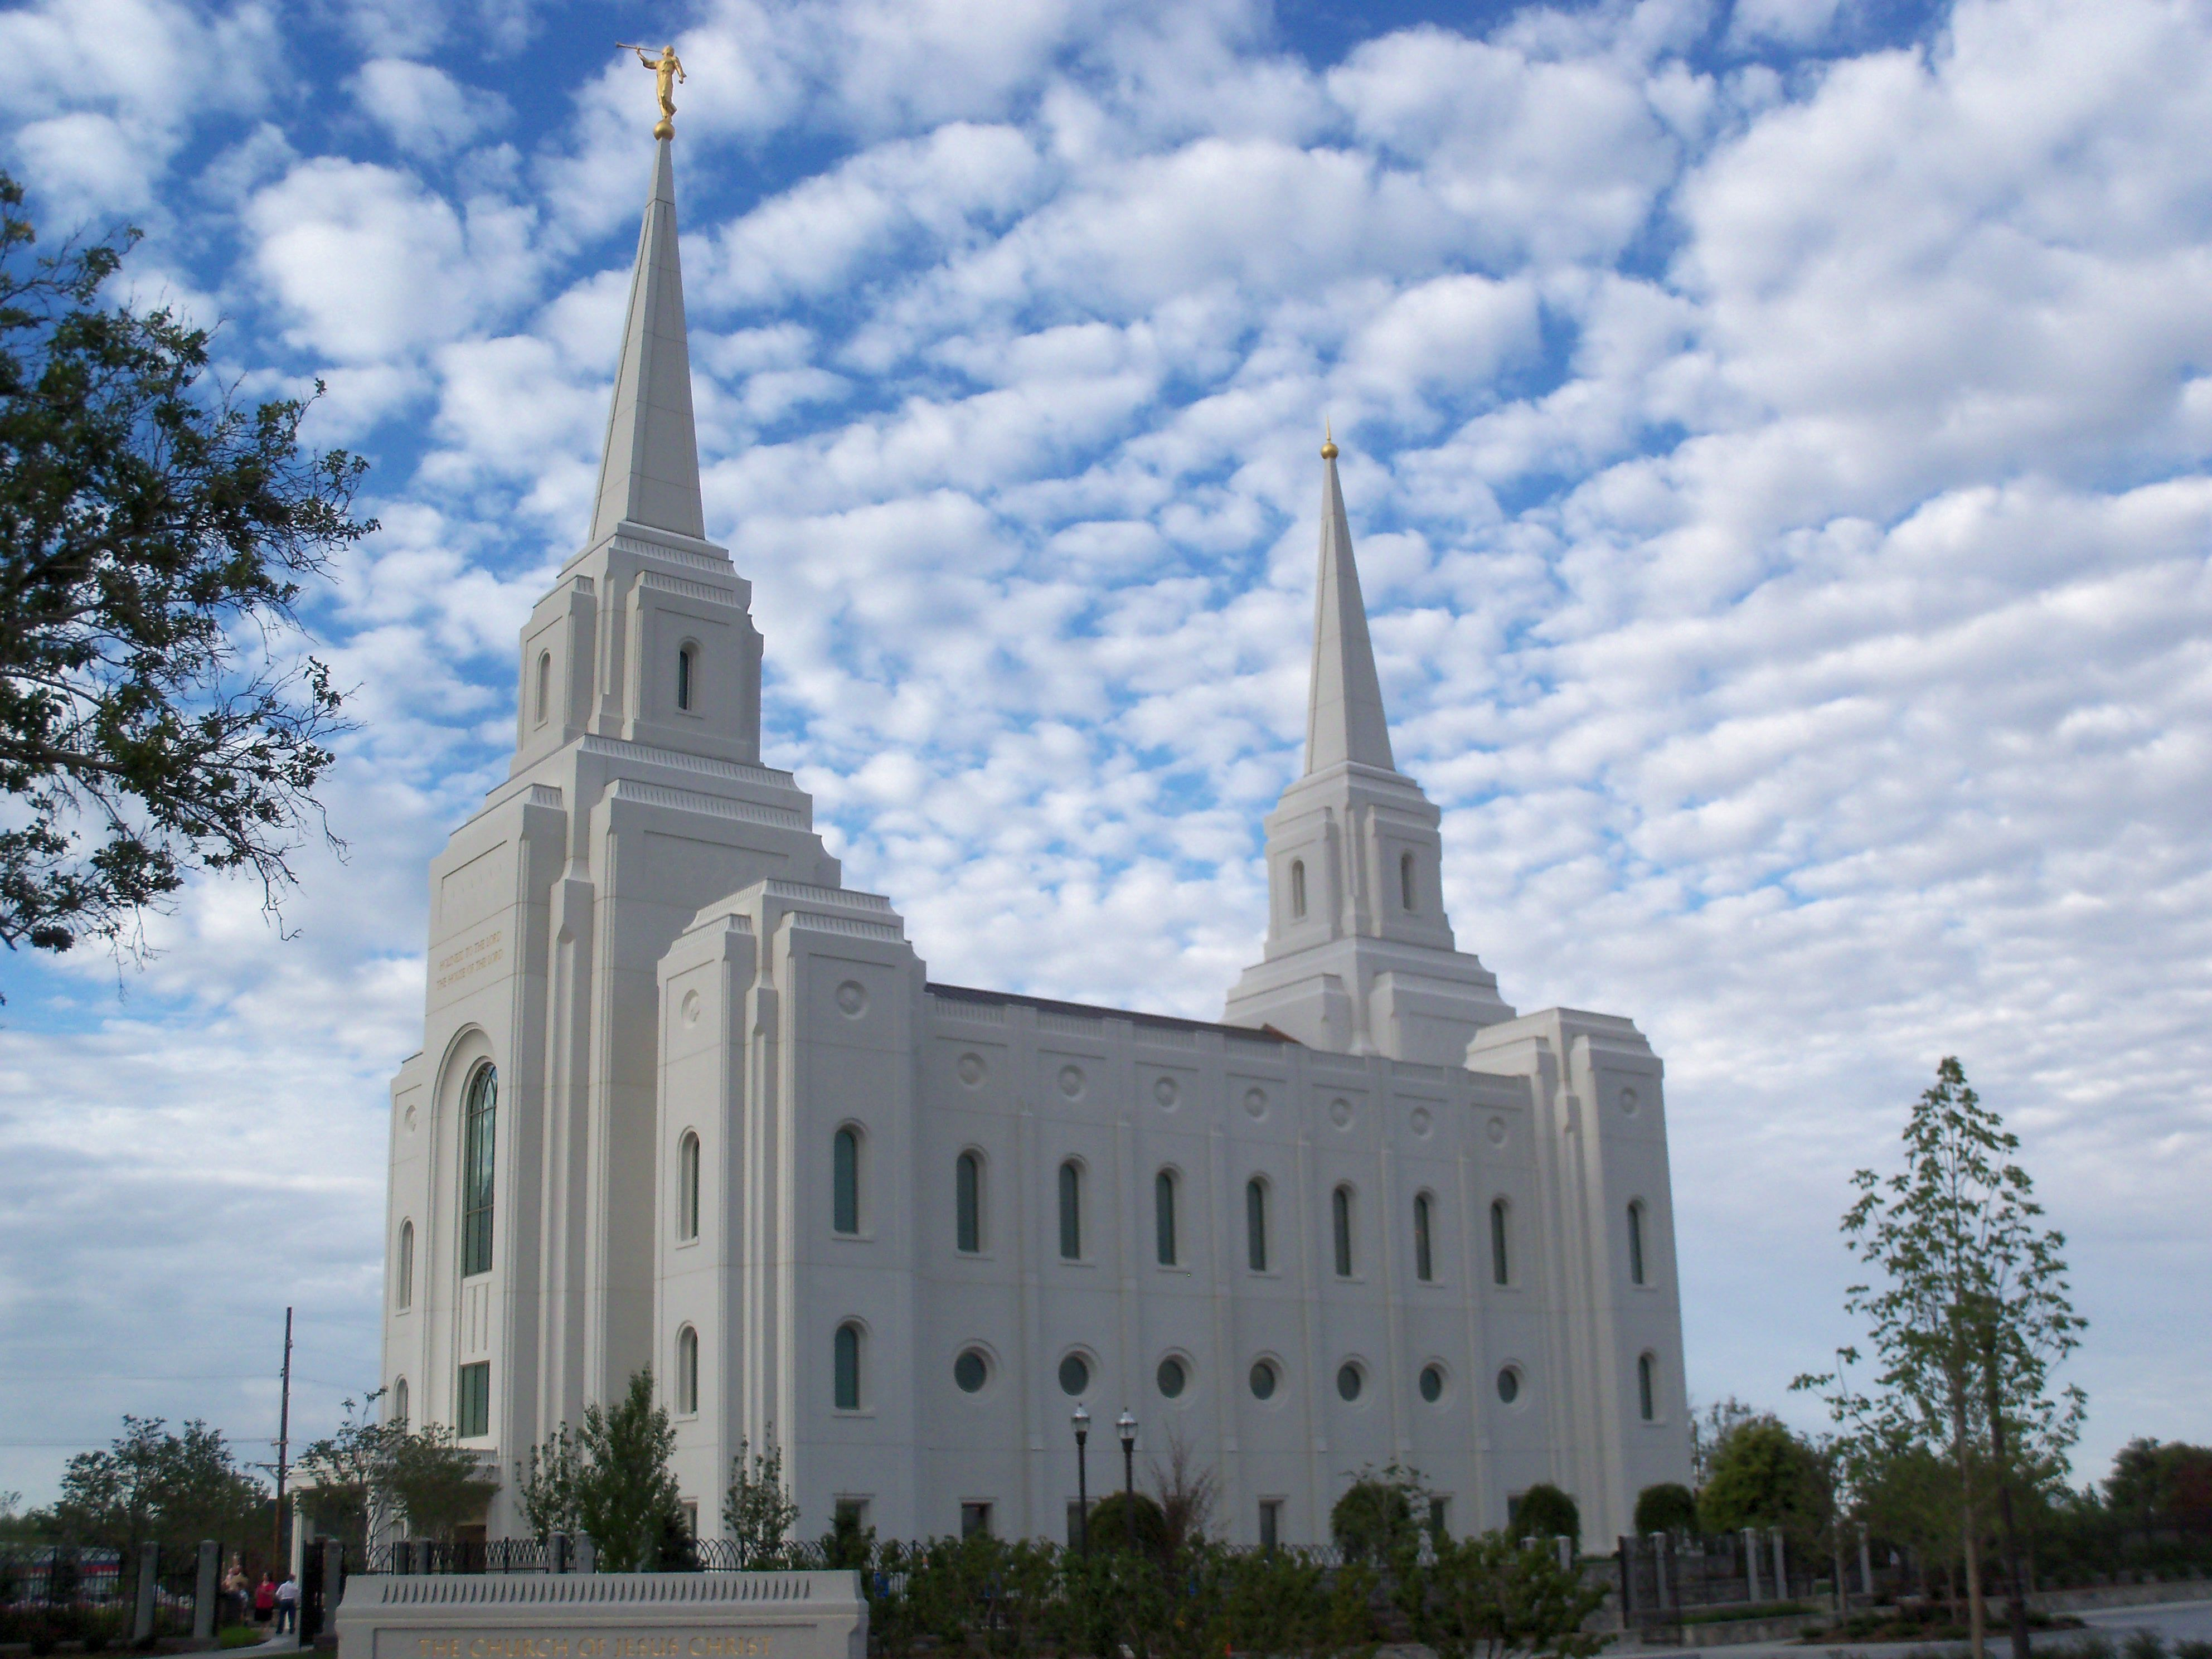 Brigham City UT Temple for the Church of Jesus Christ of Latter Day Saints